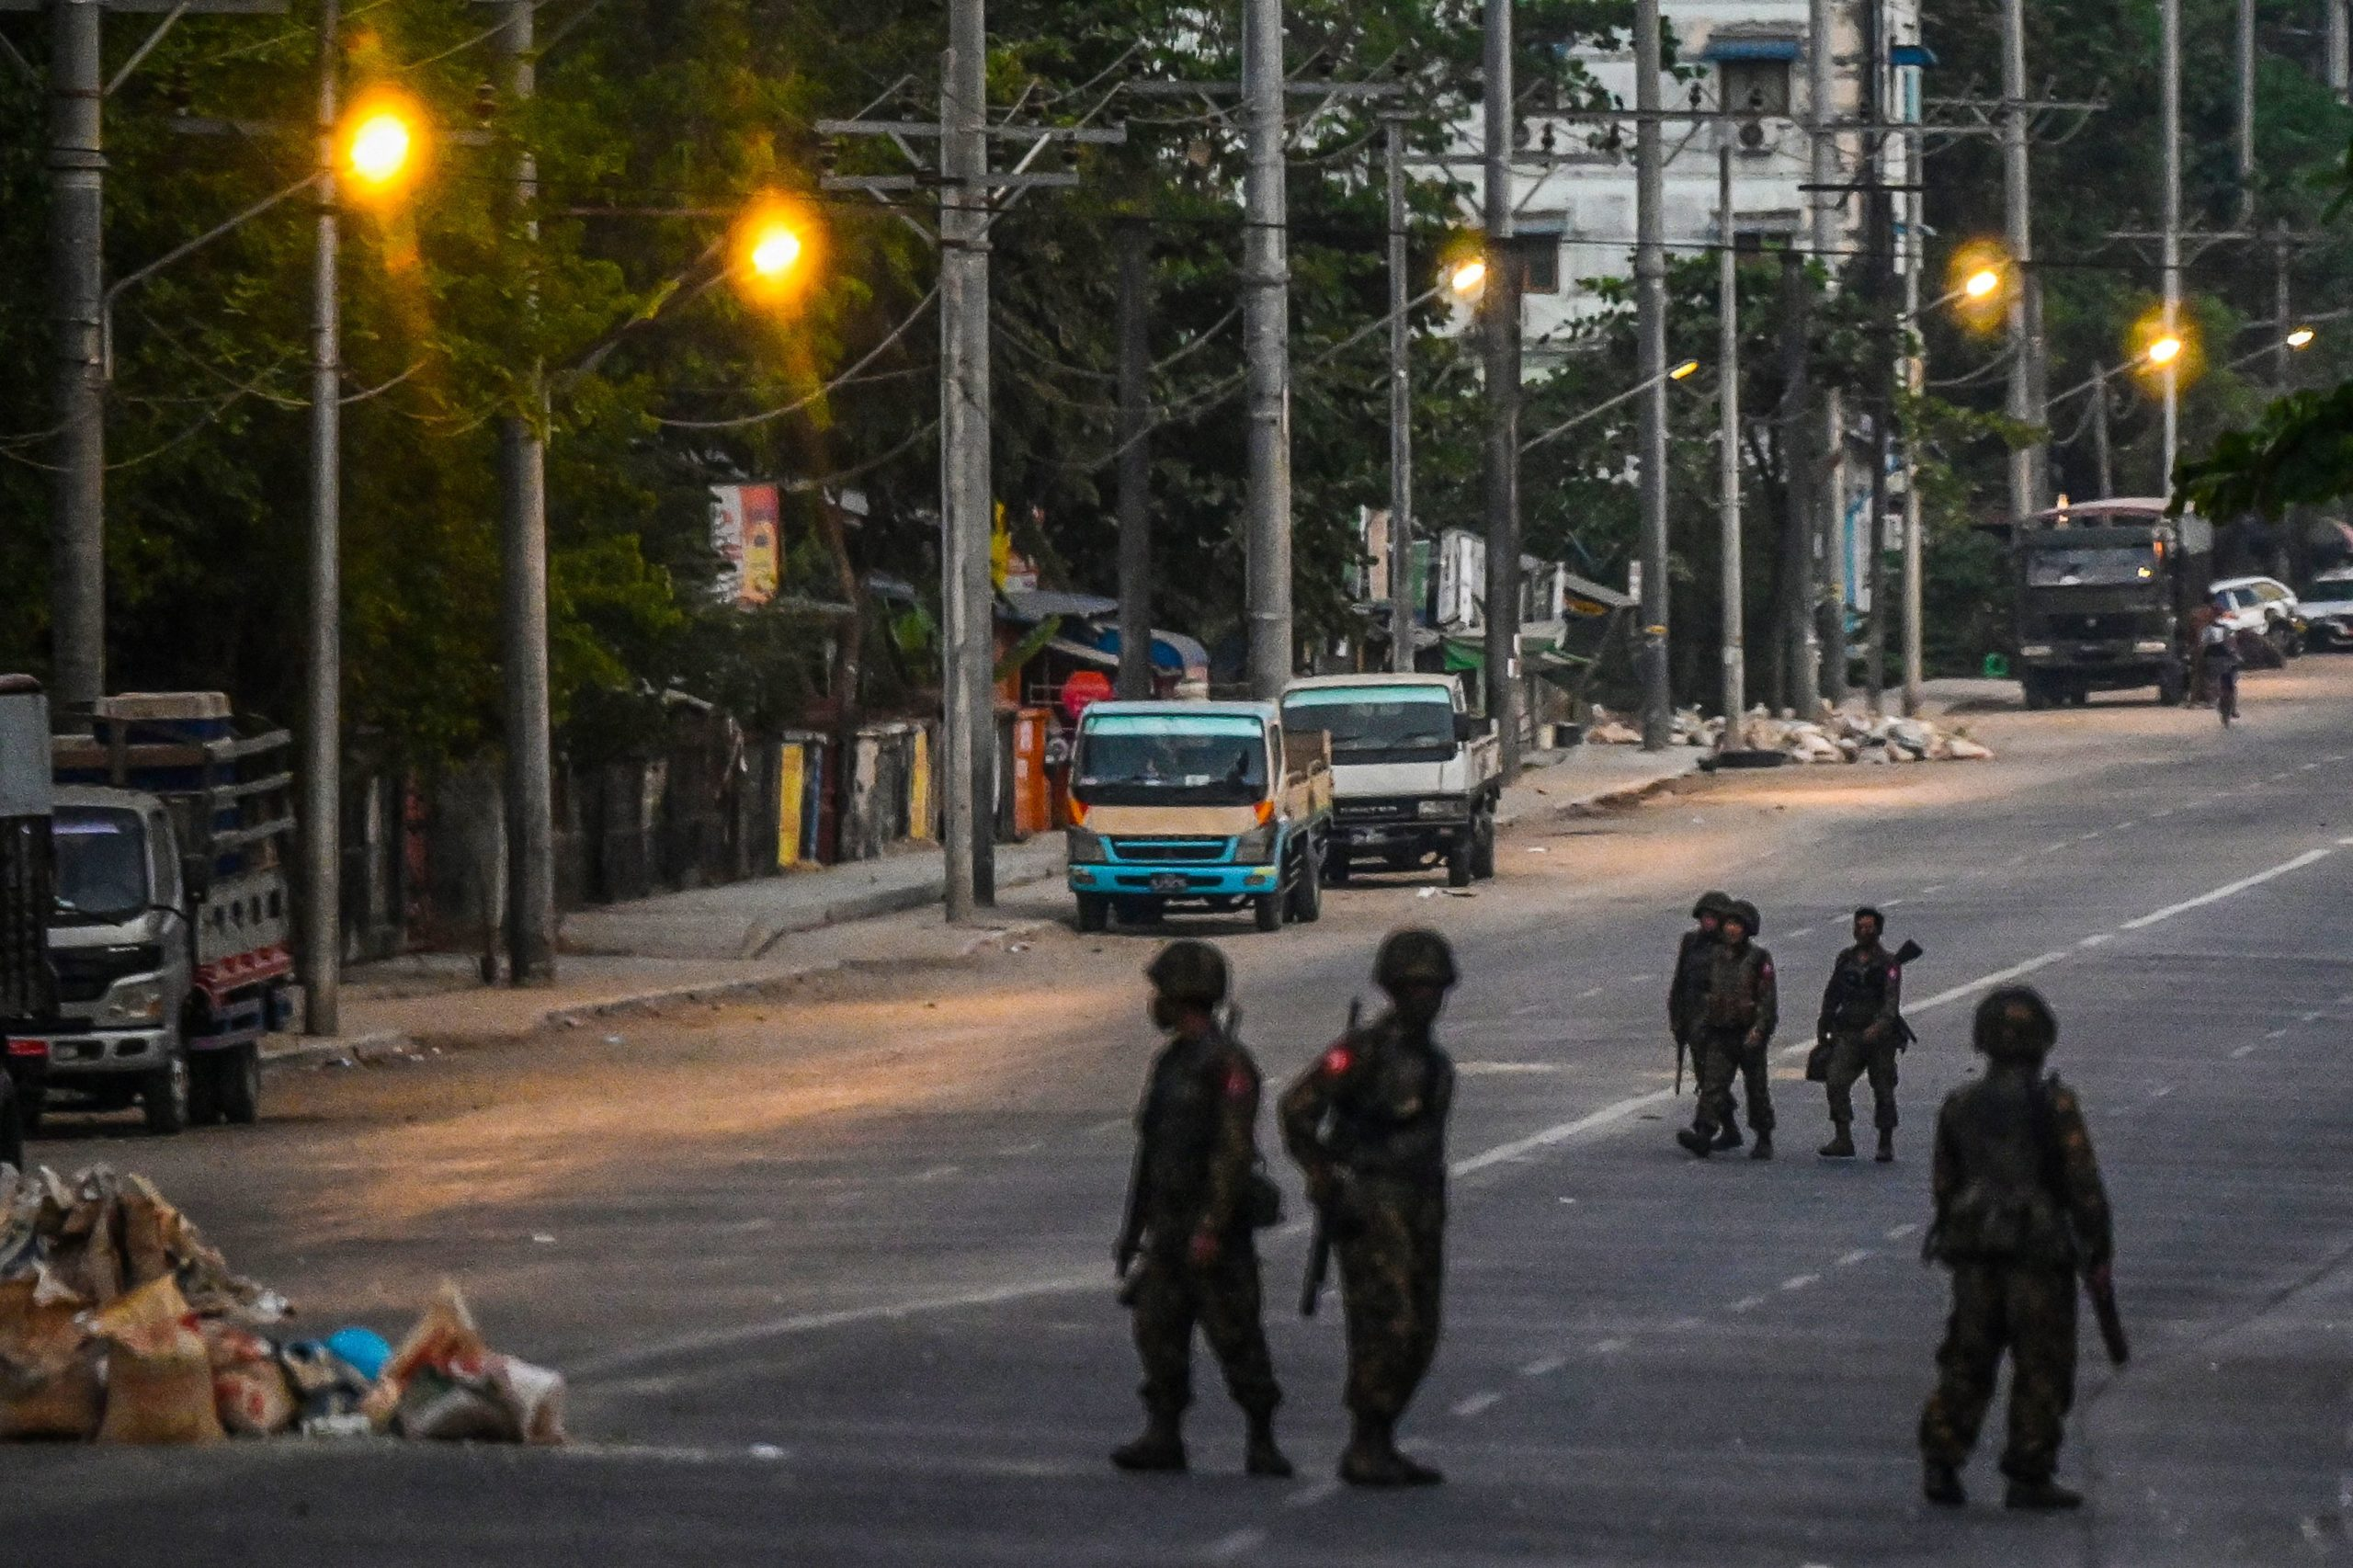 Soldiers keep watch as they block an empty street in Yangon on March 10, 2021, as security forces continue to crackdown on demonstrations by protesters against the military coup. (Photo by STR / AFP) (Photo by STR/AFP via Getty Images)